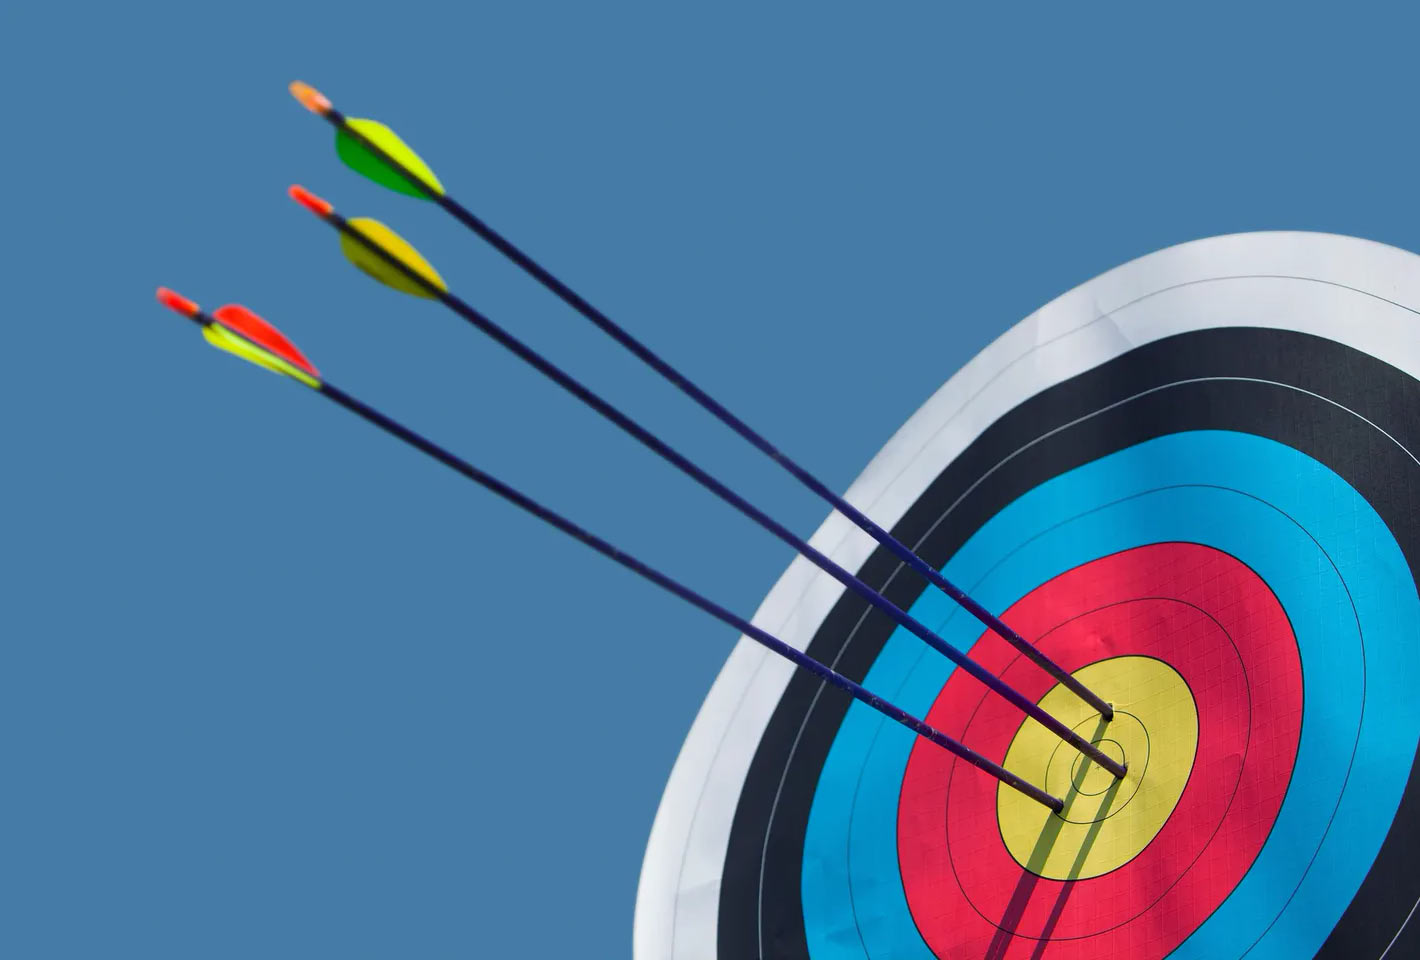 Archery target with arrows in it at Orlando Archery Academy's indoor range in Orlando Florida